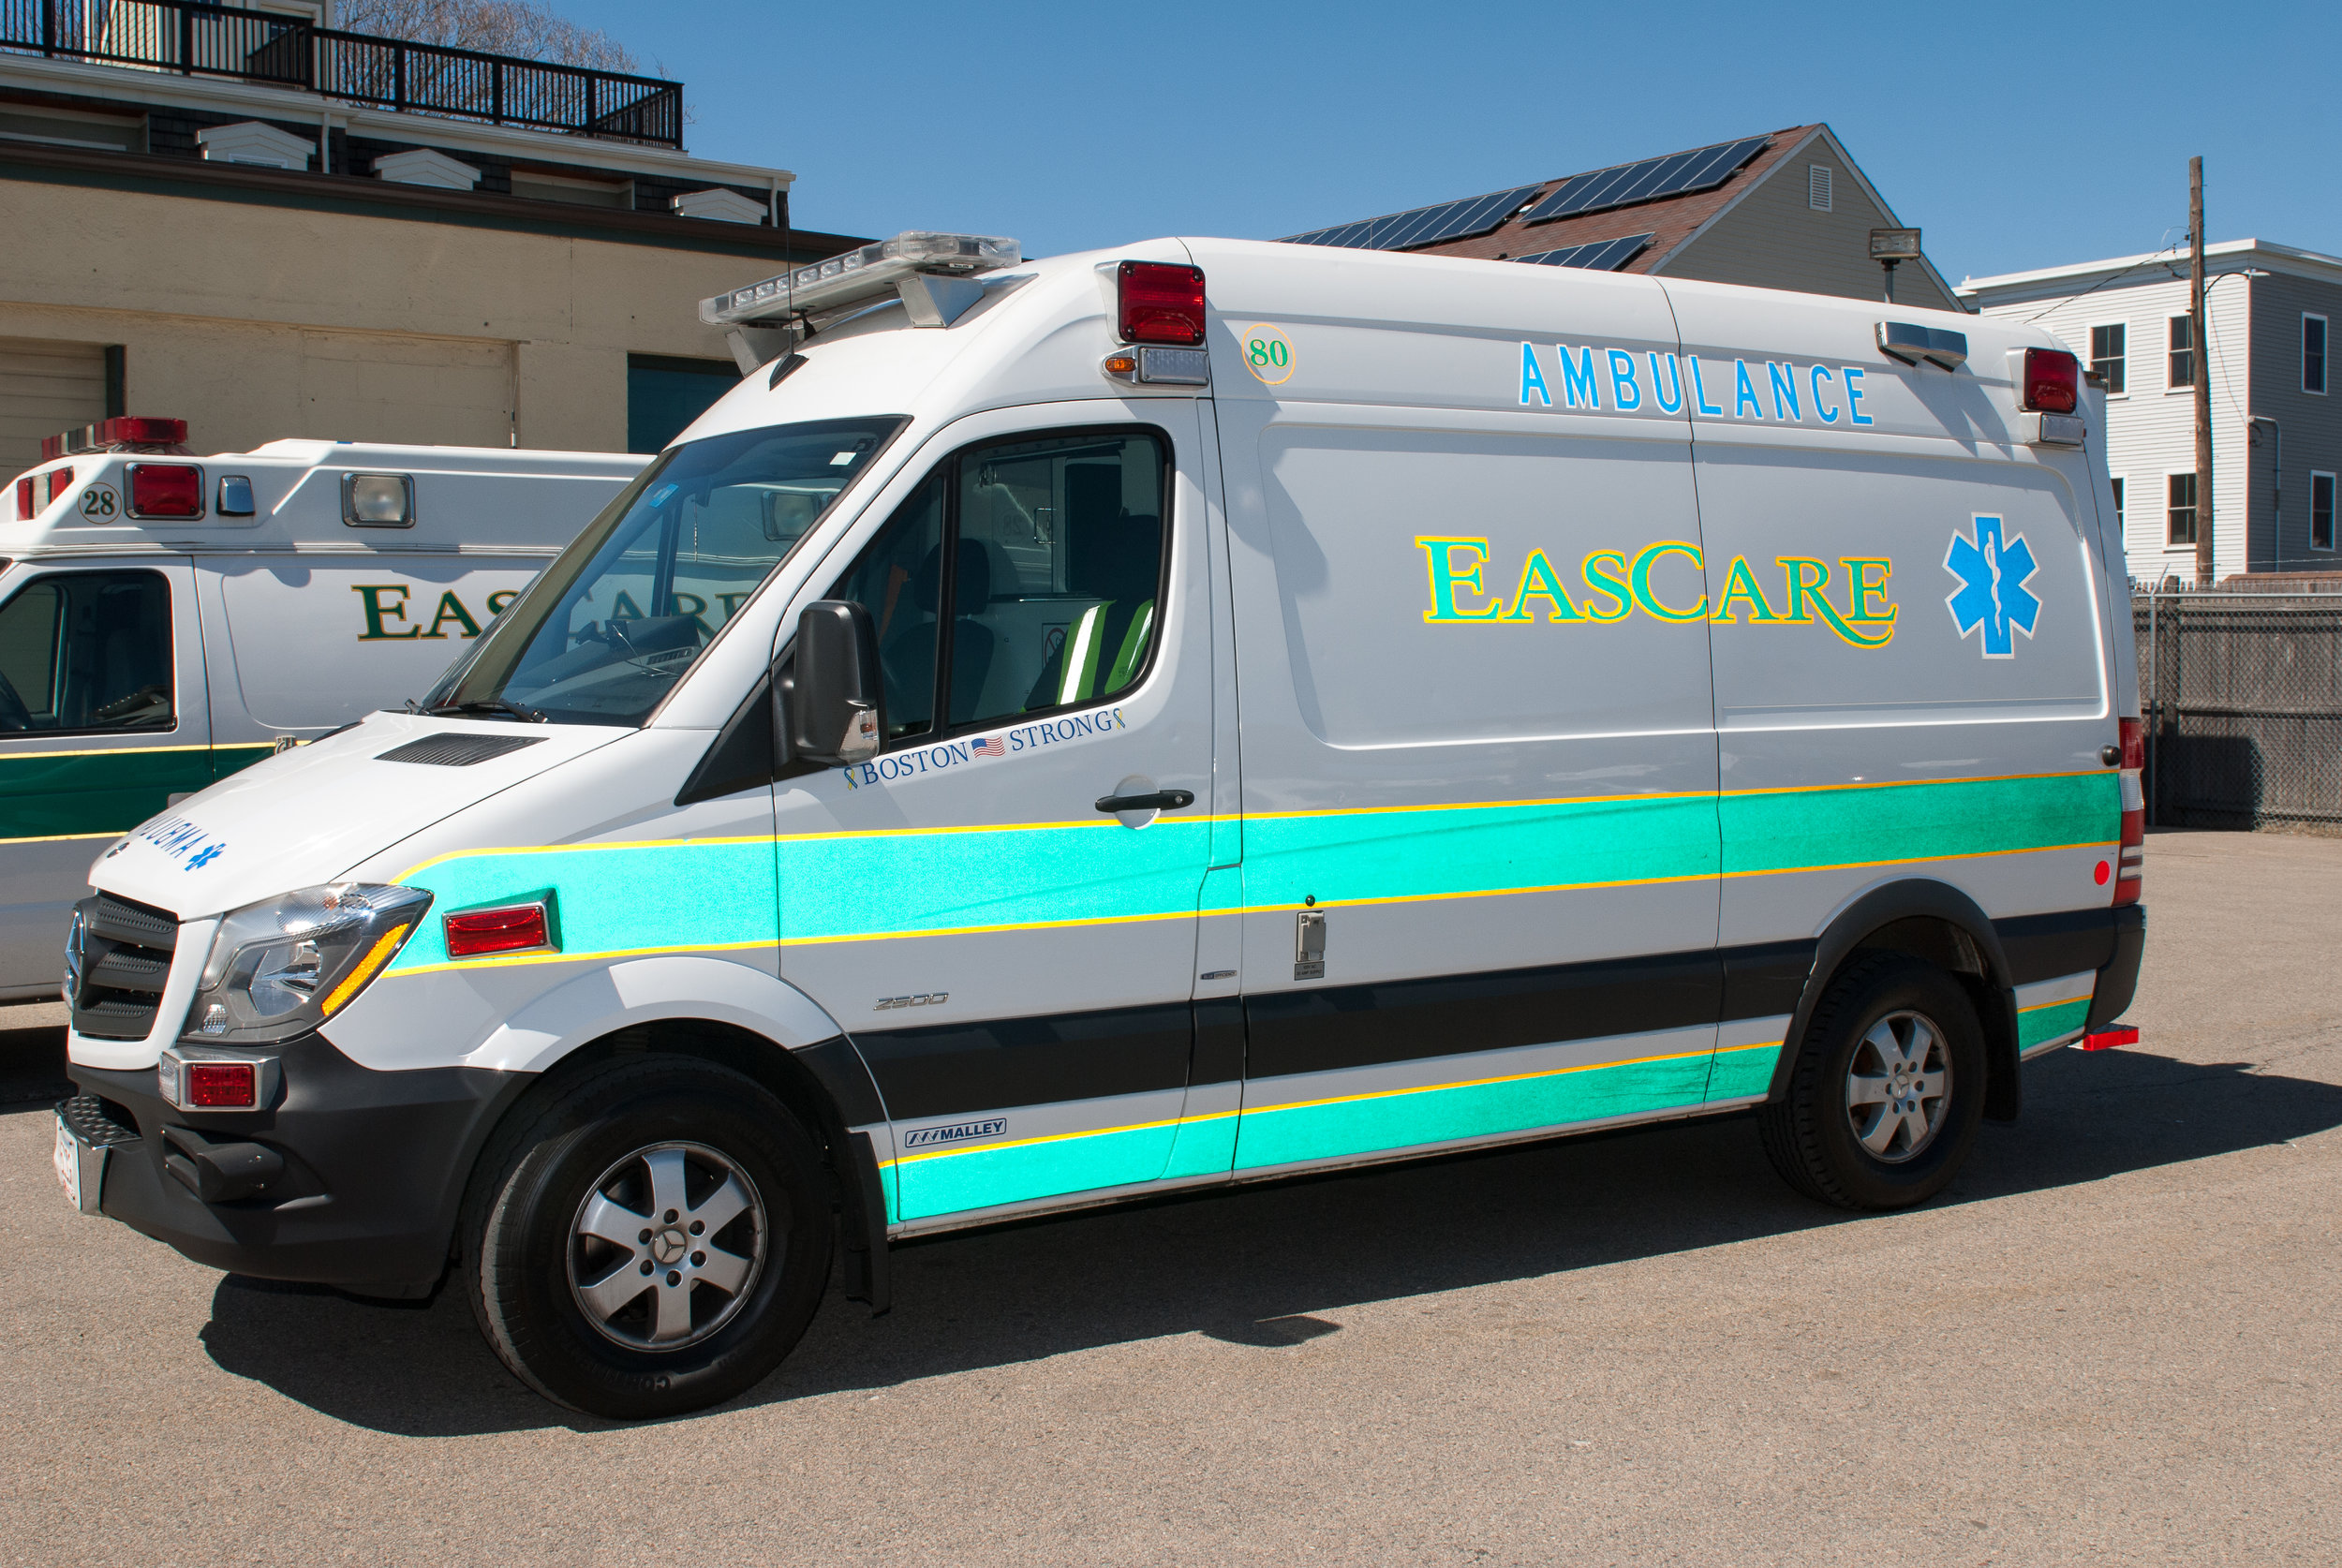 EasCare ambulance